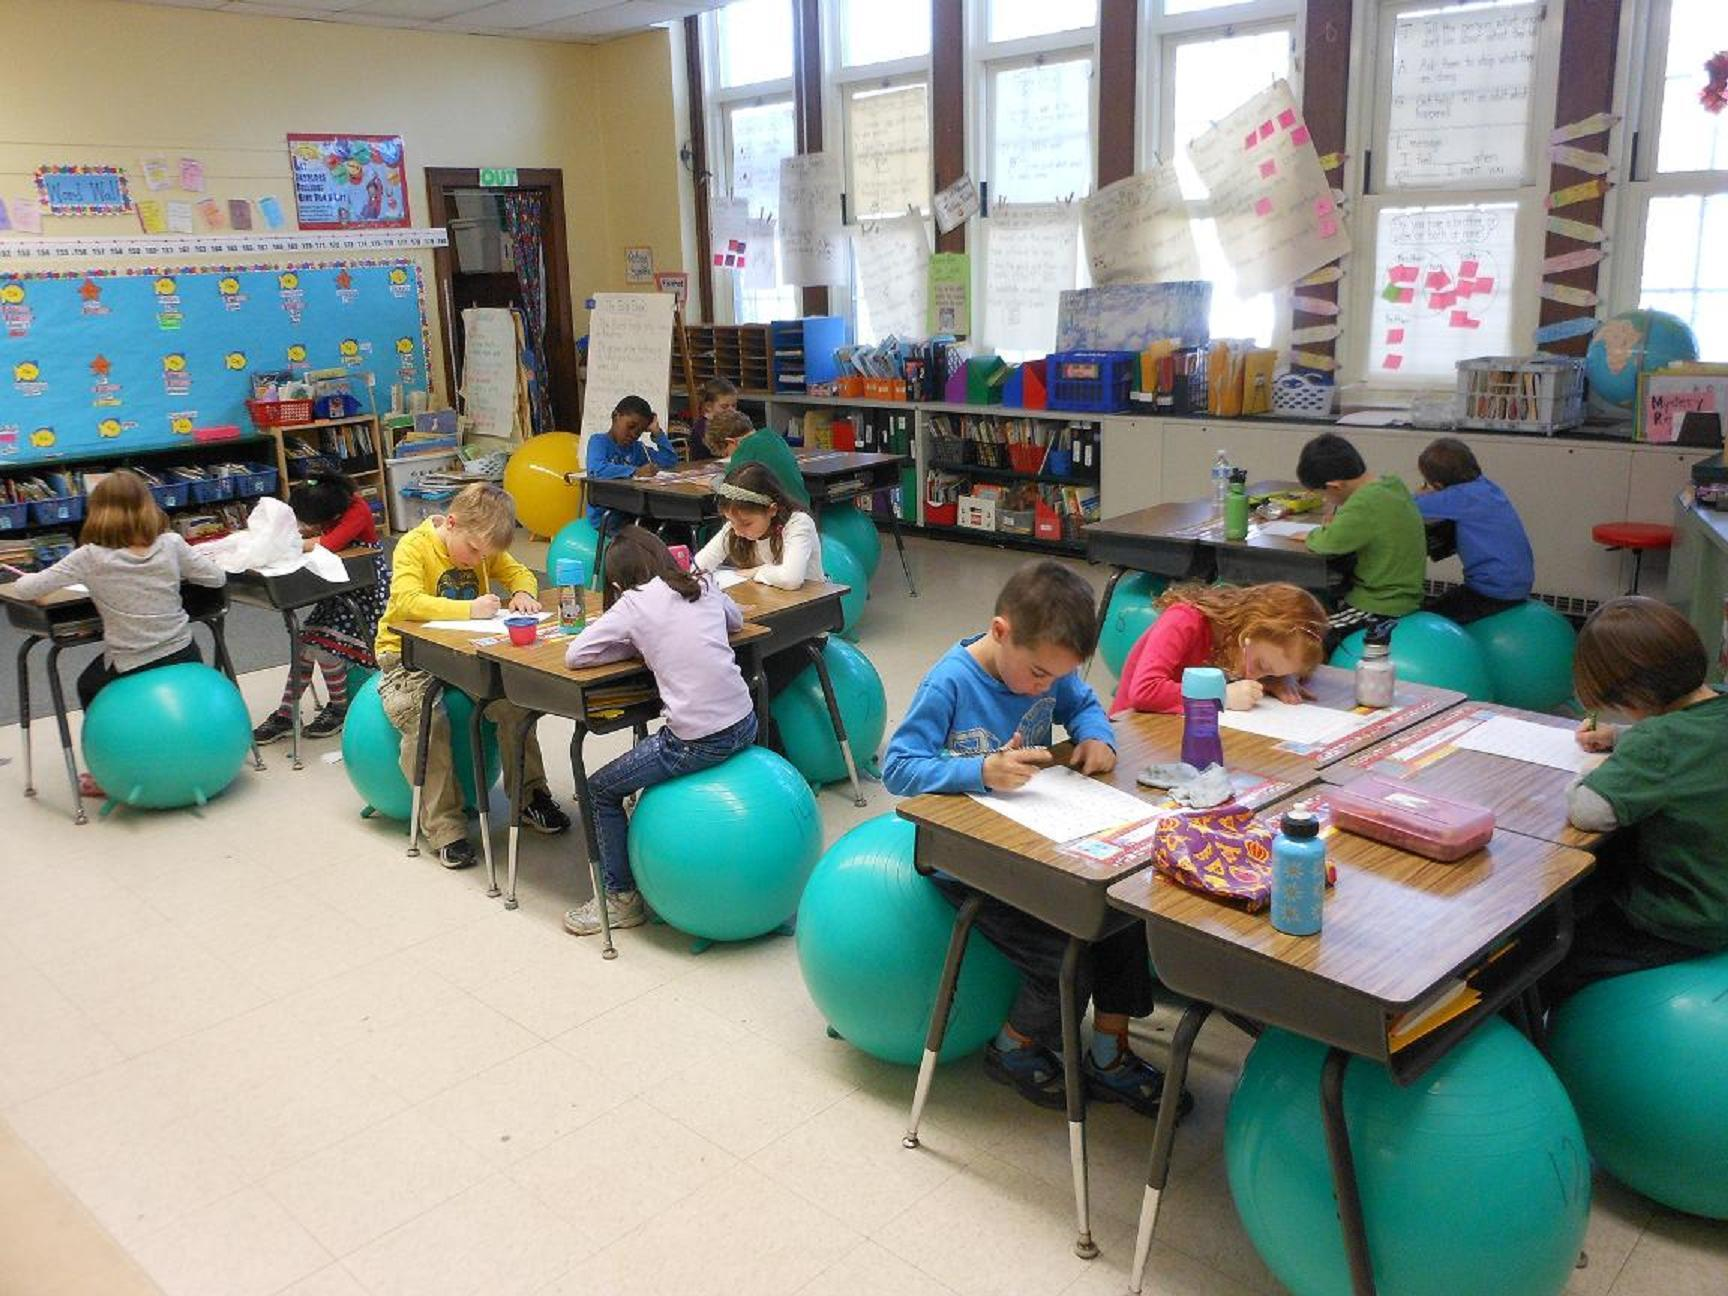 Stability Balls Bounce Into the Classroom News TAPinto